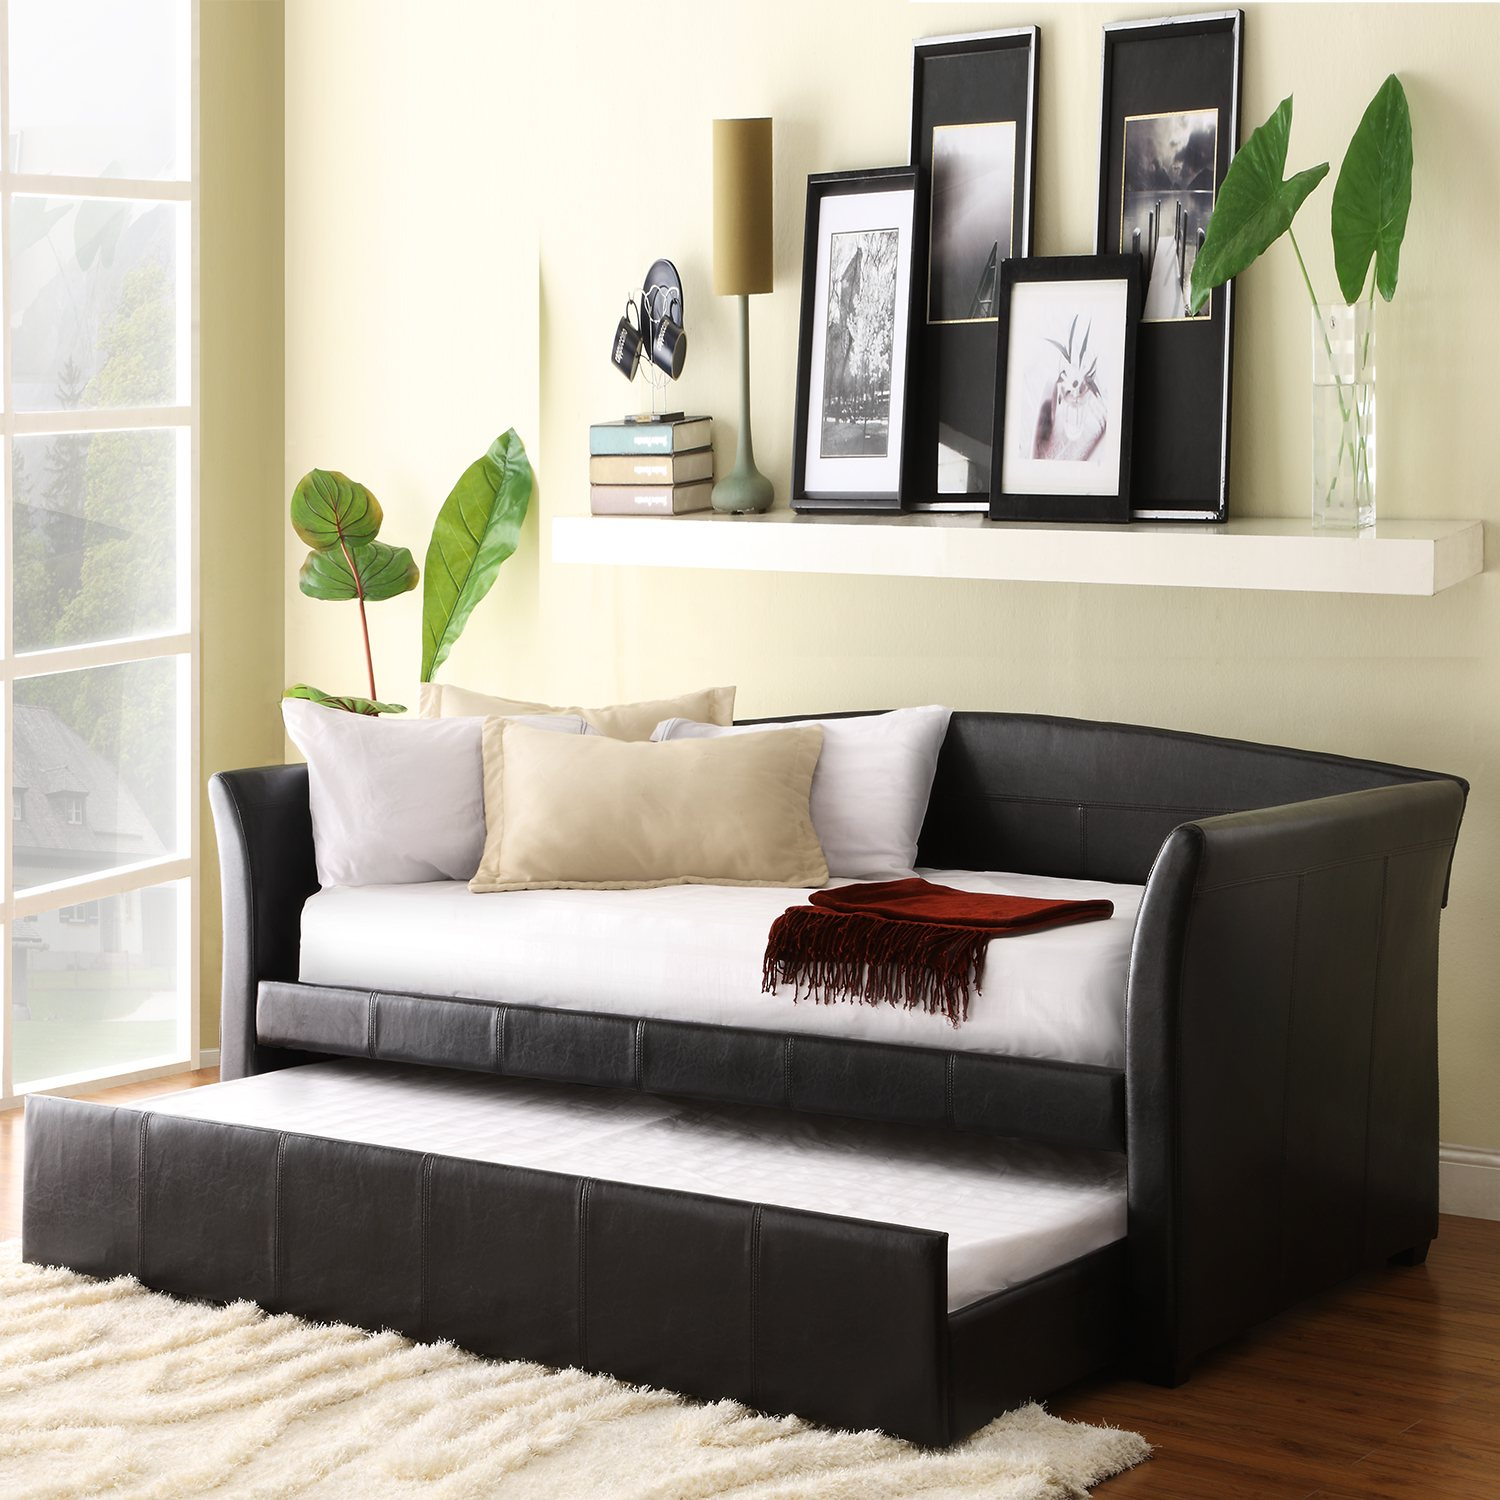 Cheap Daybeds | High Riser Bed | Daybeds with Pop Up Trundle